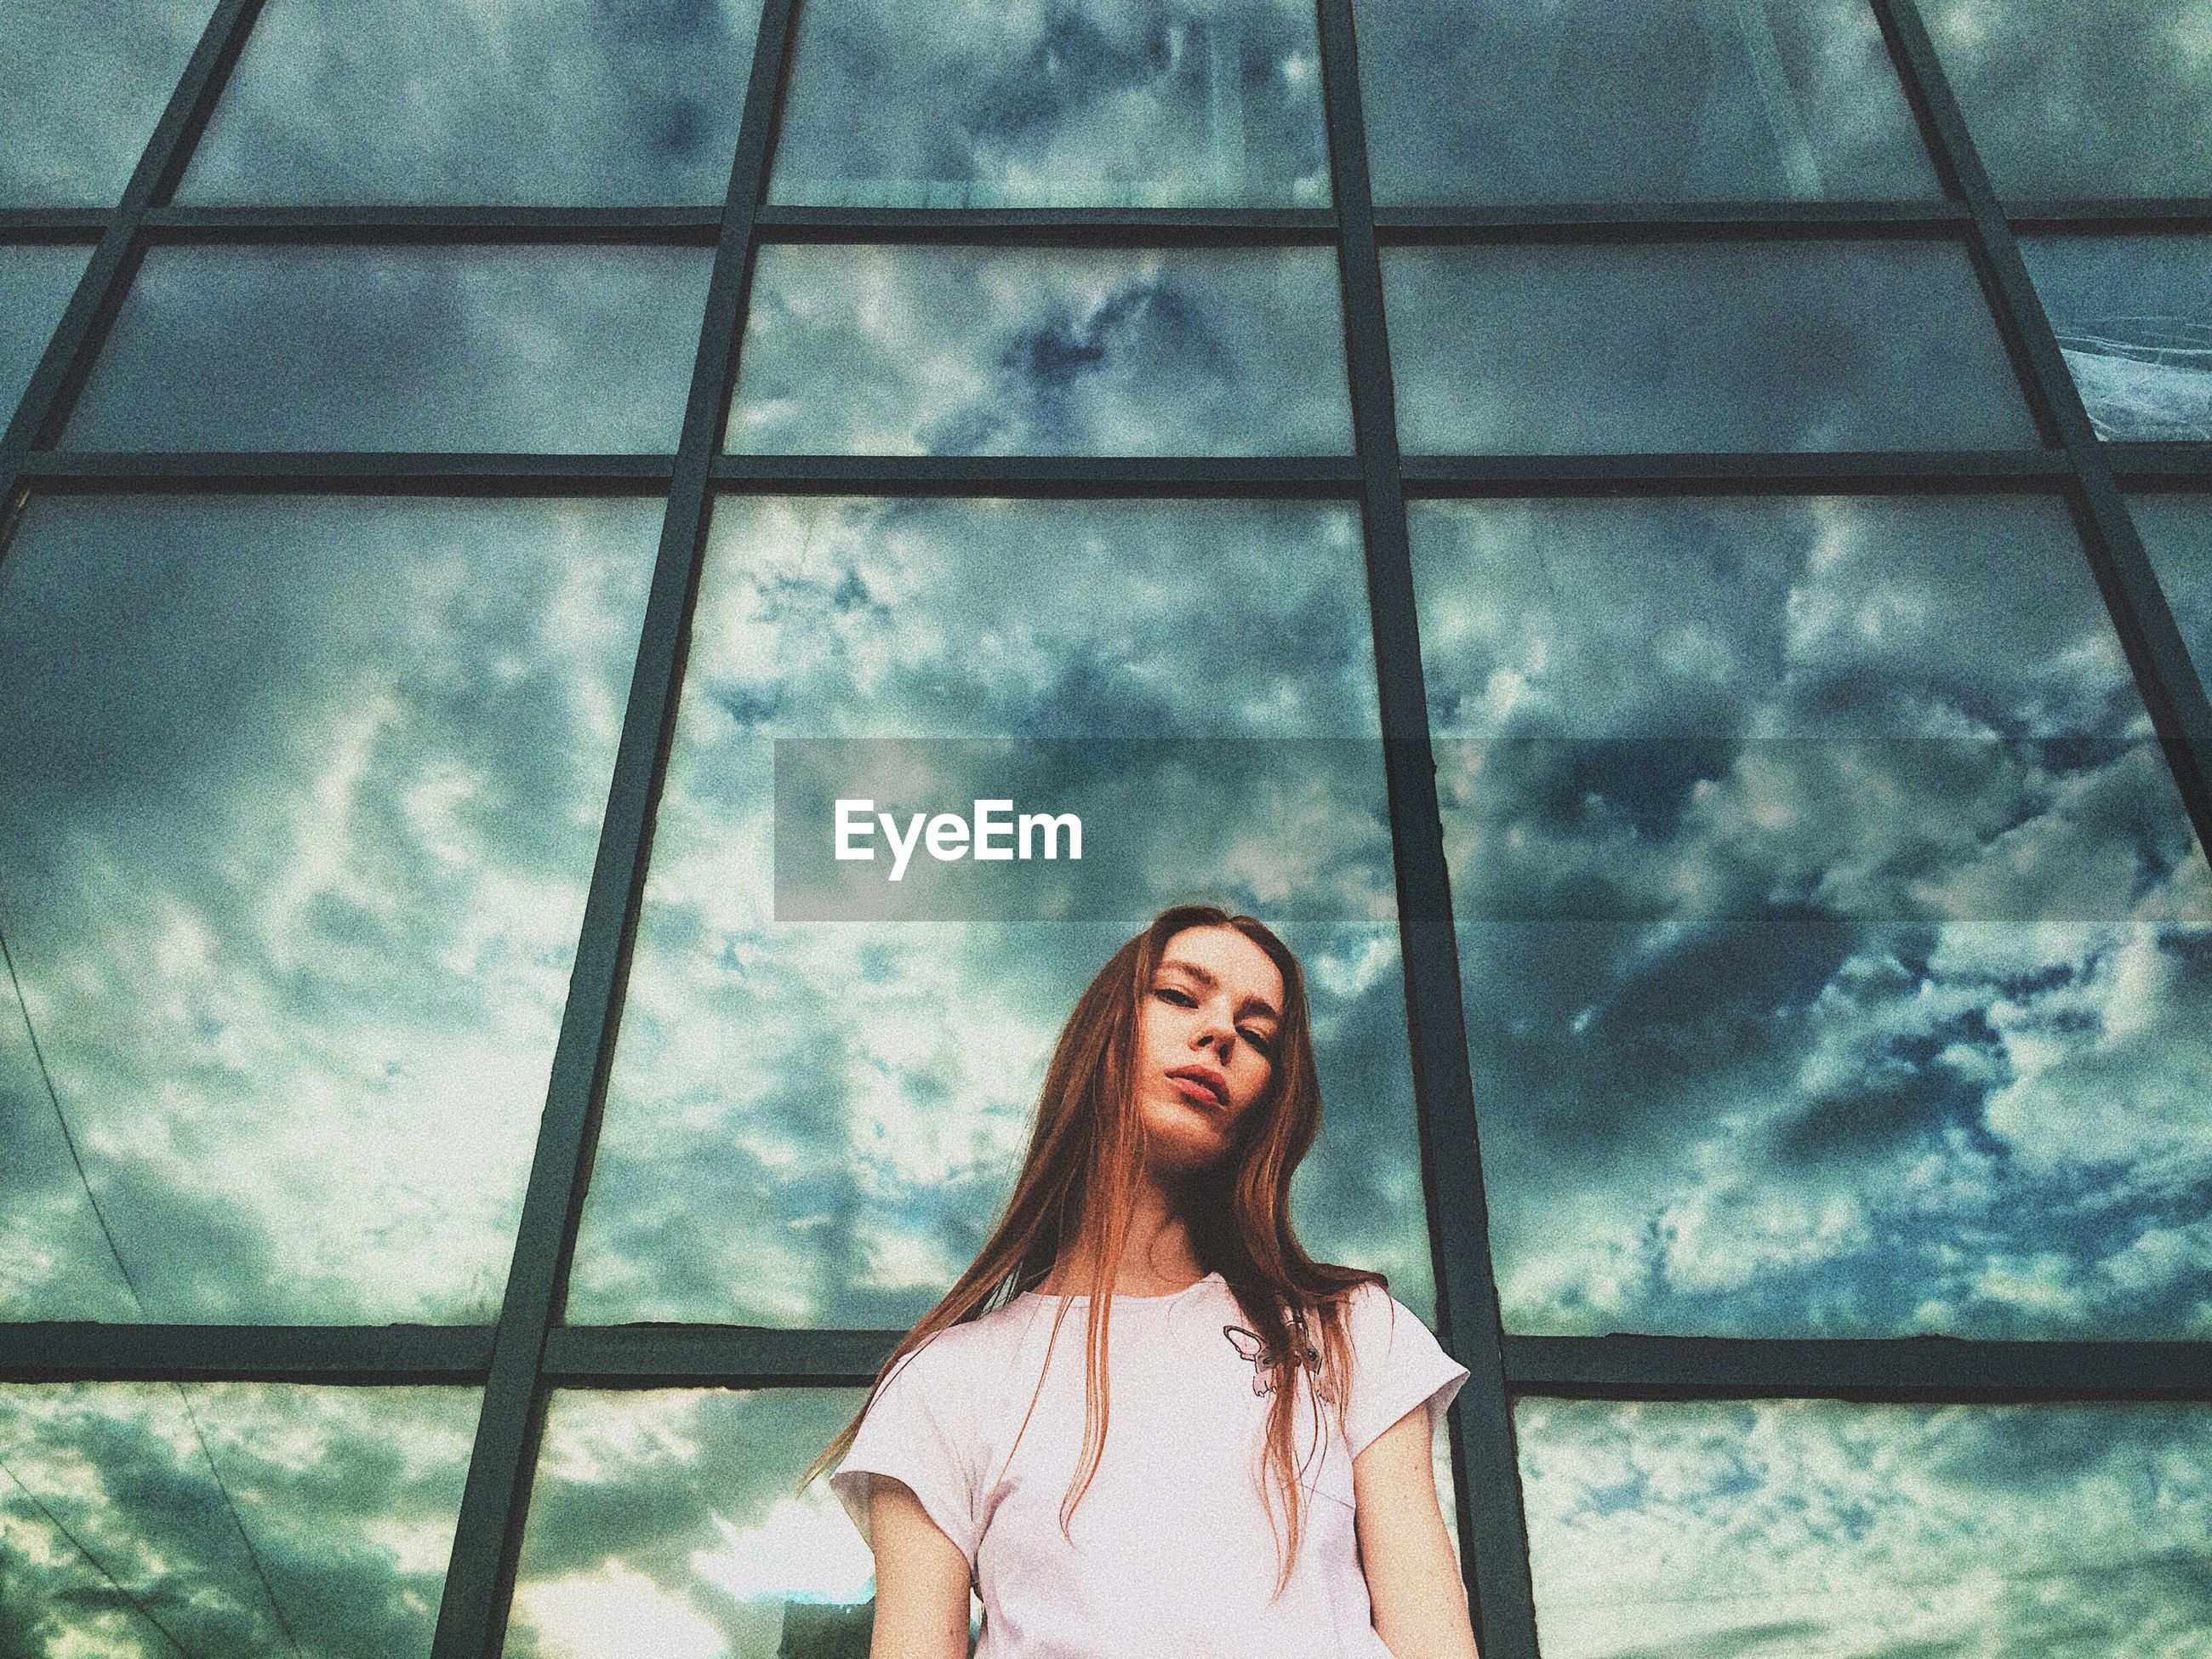 Low angle portrait of young woman against glass window with cloudy sky in background